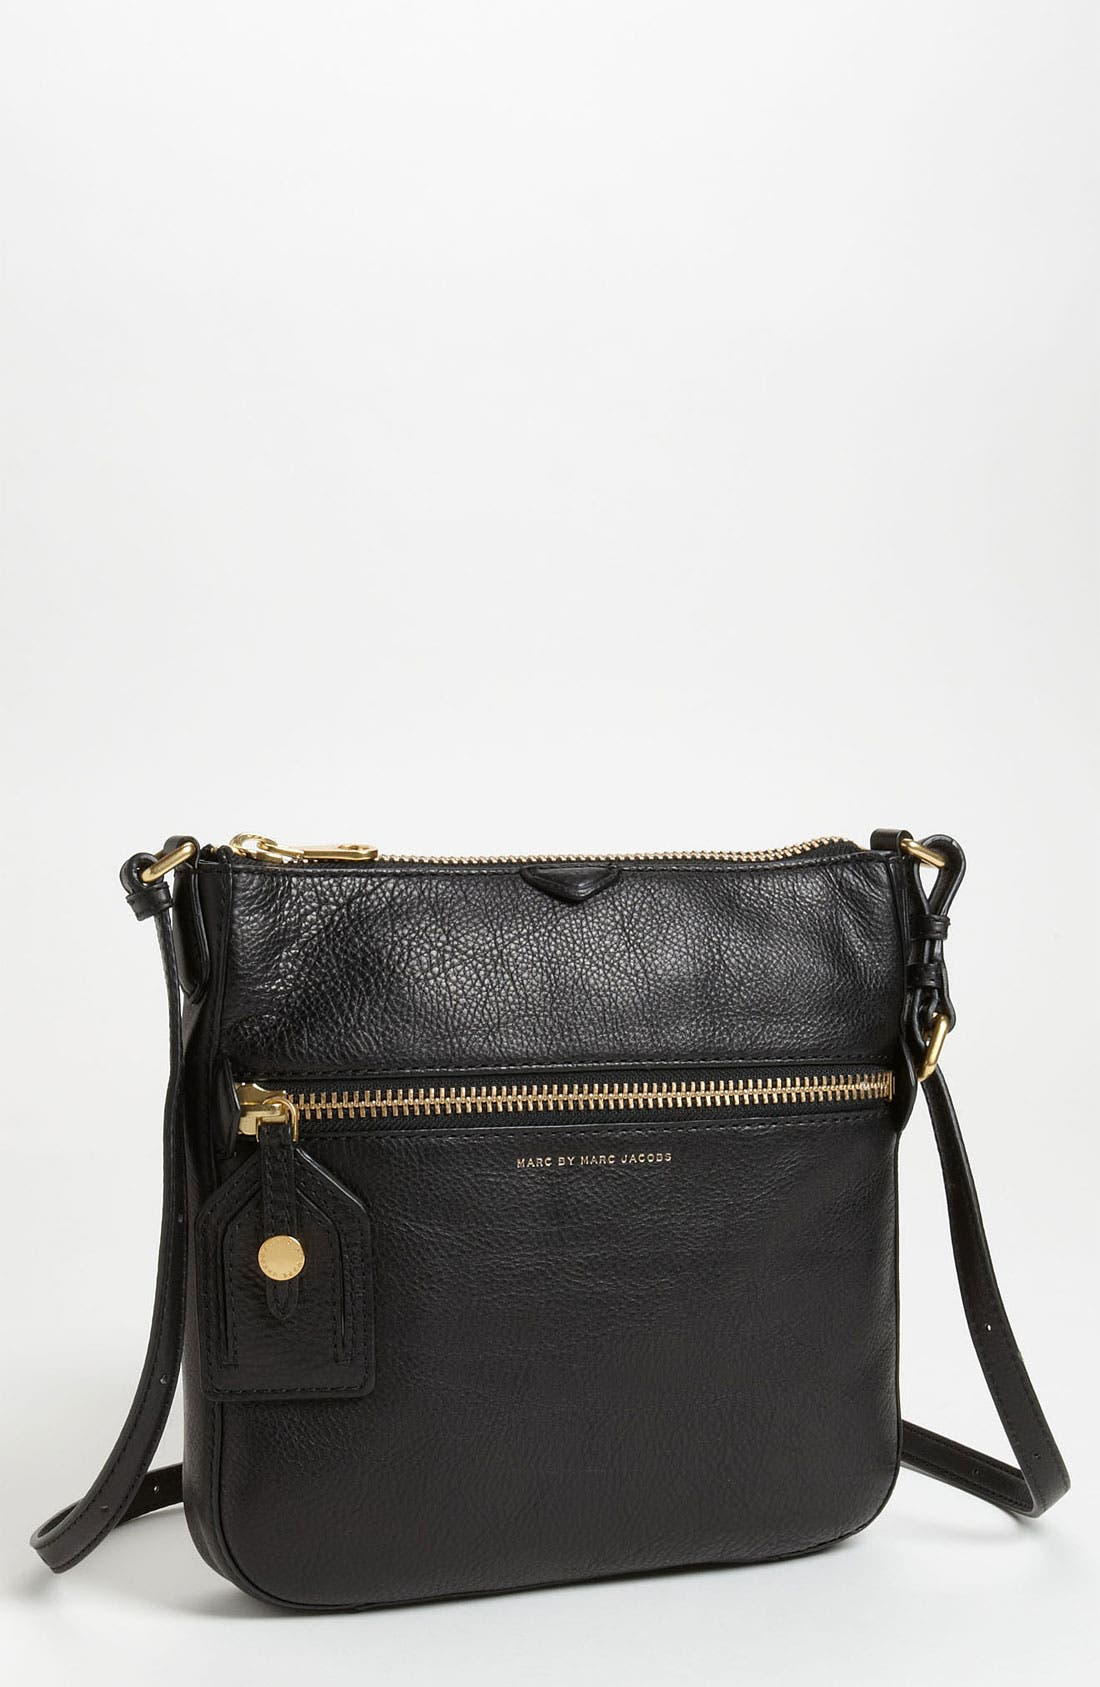 Main Image - MARC BY MARC JACOBS 'Globetrotter - Kit Calley' Leather Crossbody Bag